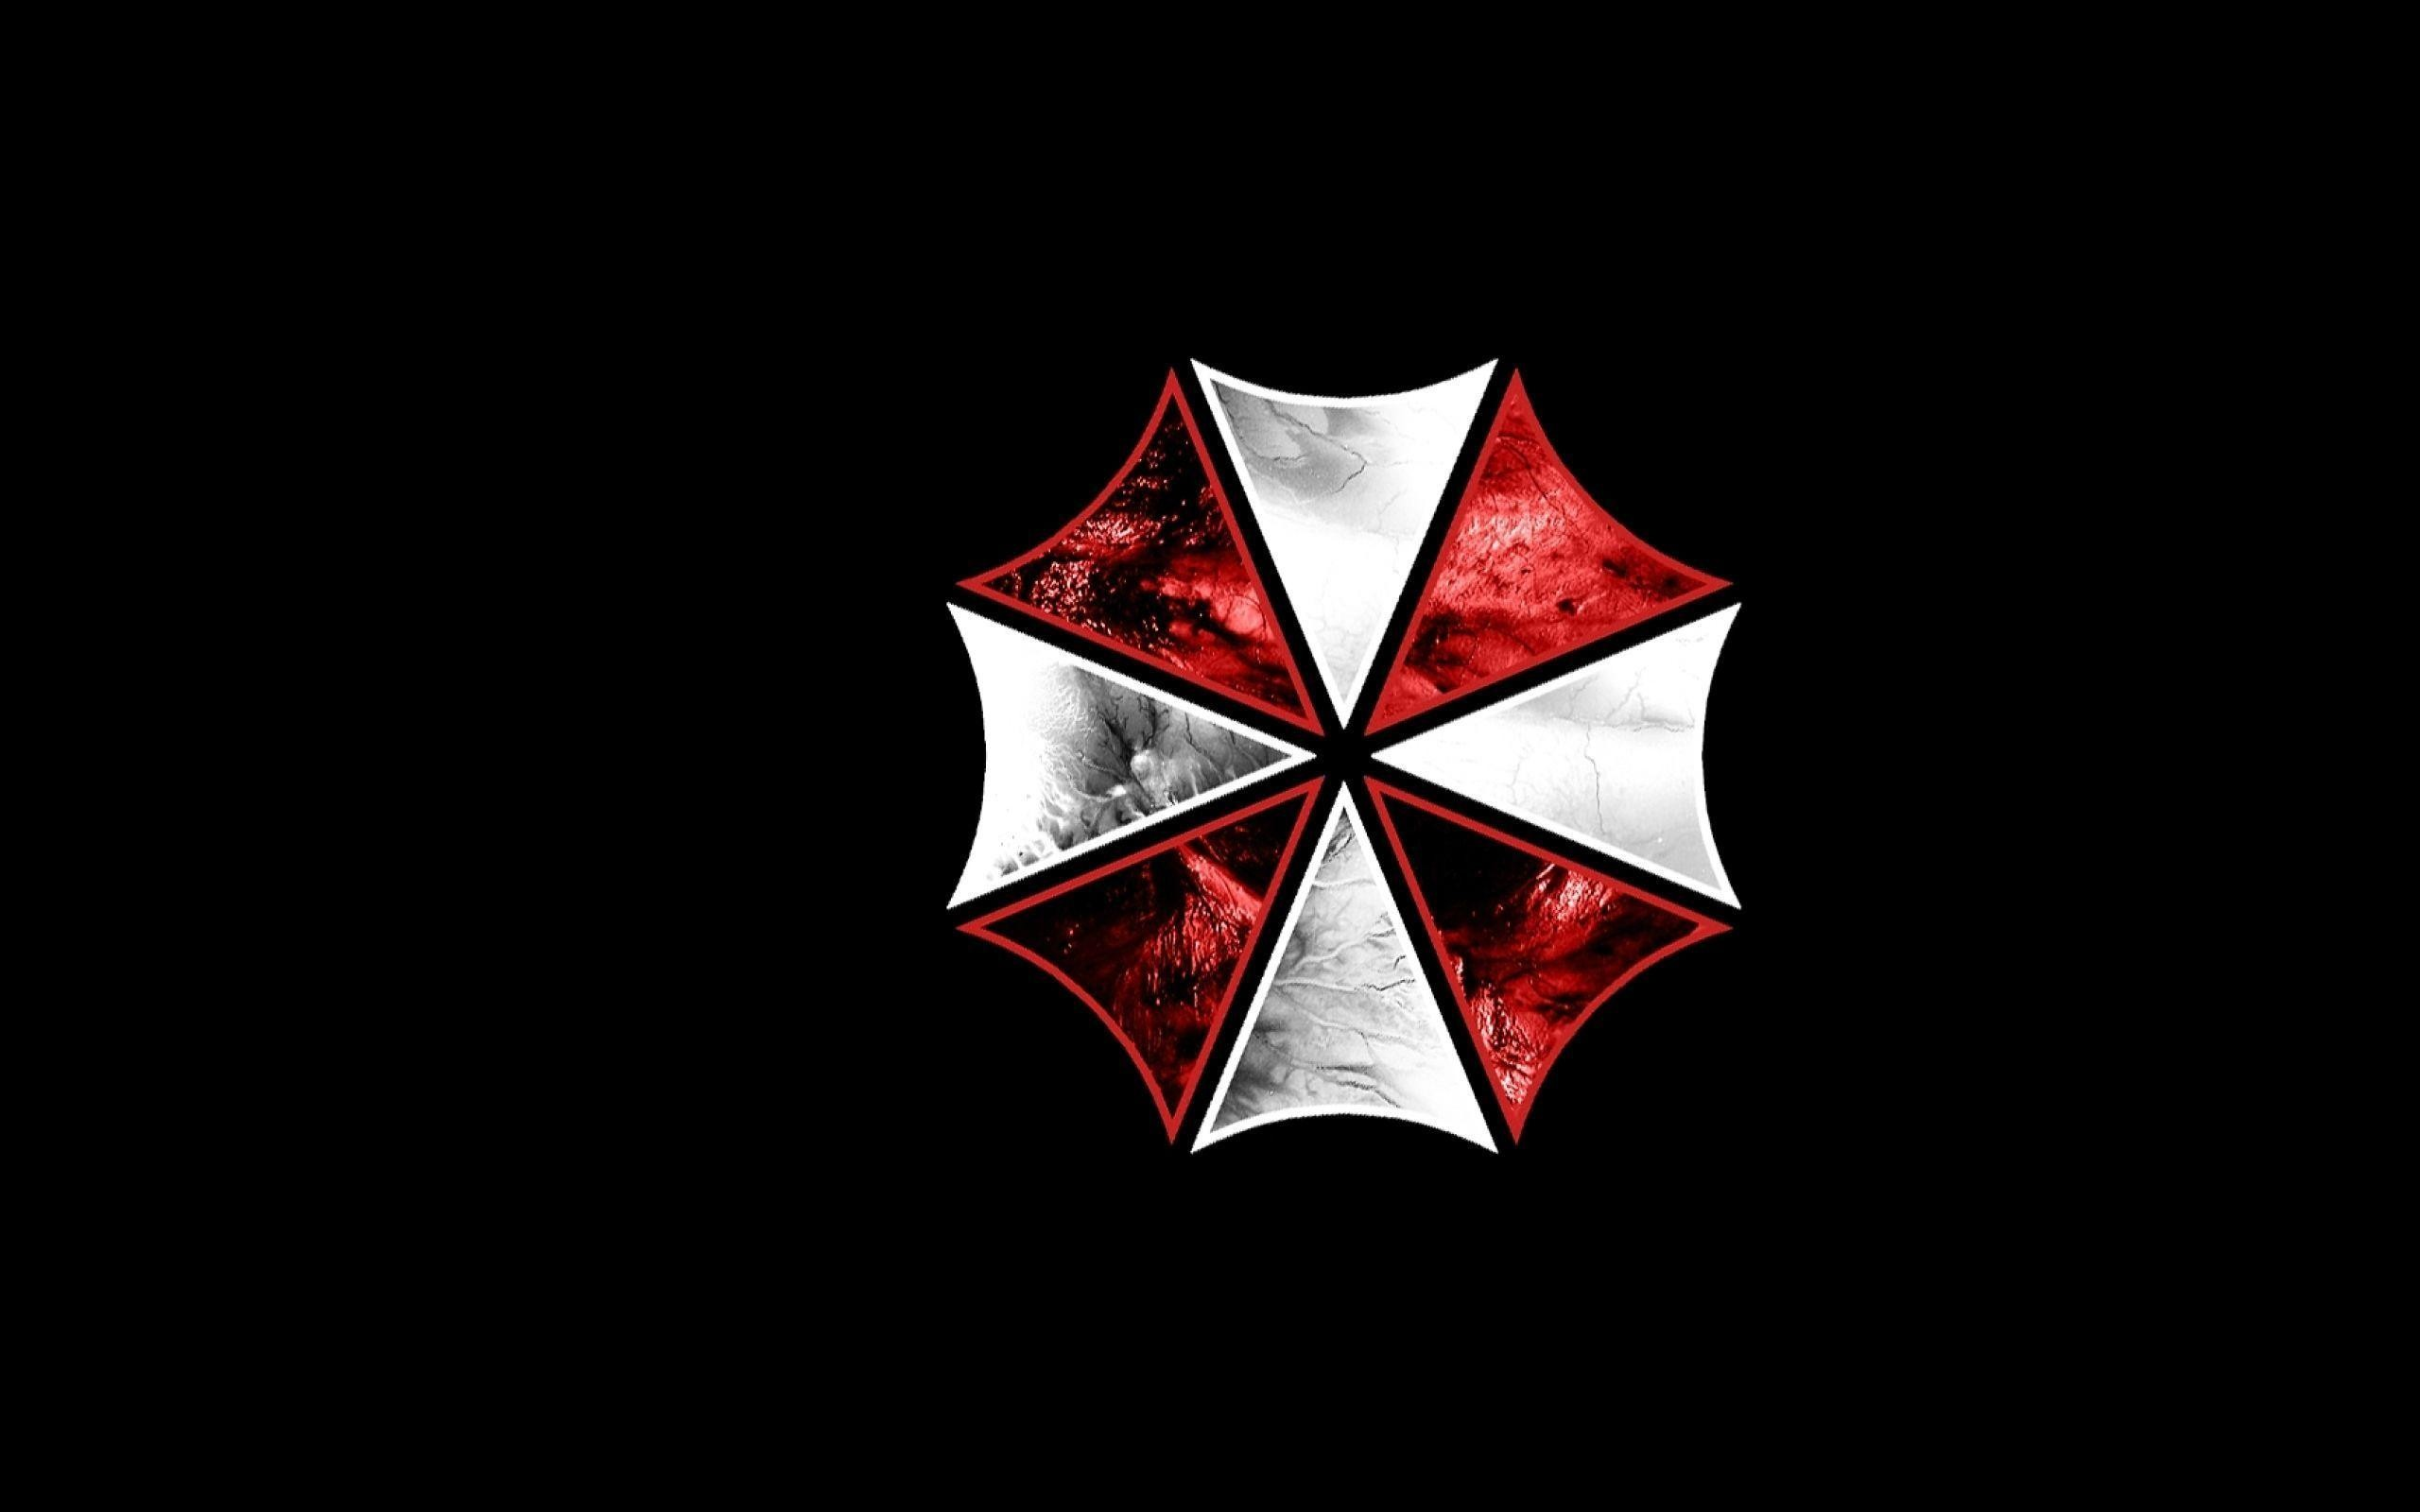 Umbrella corporation live wallpaper 77 images 2560x1600 umbrella corp iphone wallpaper hd wallpapers pictures hd voltagebd Images